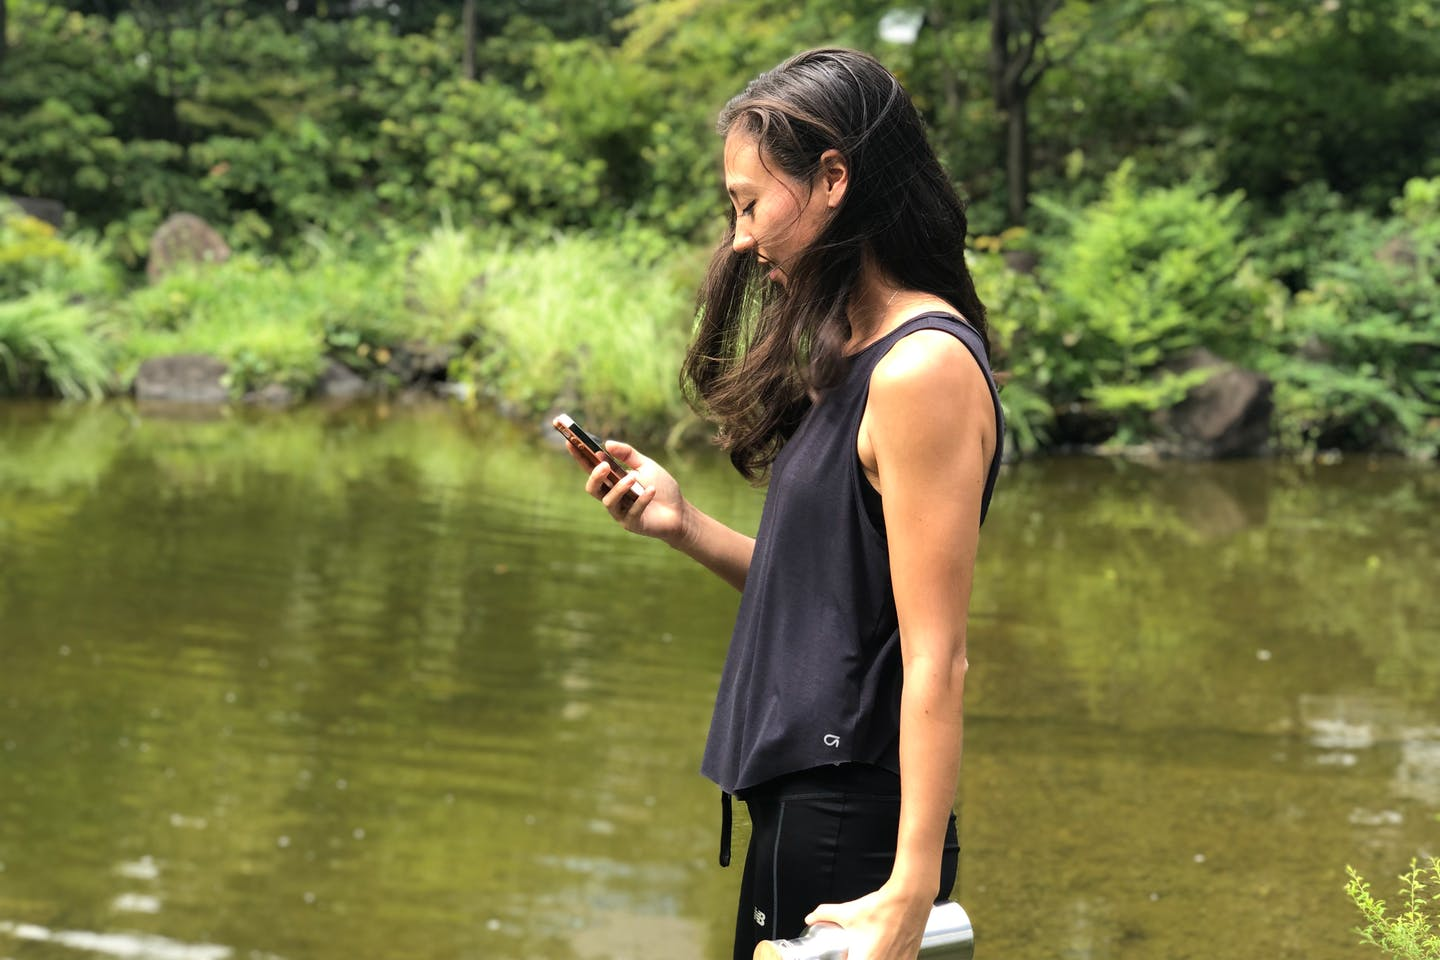 Japan social innovation nonprofit launches first free water refill app MyMizu